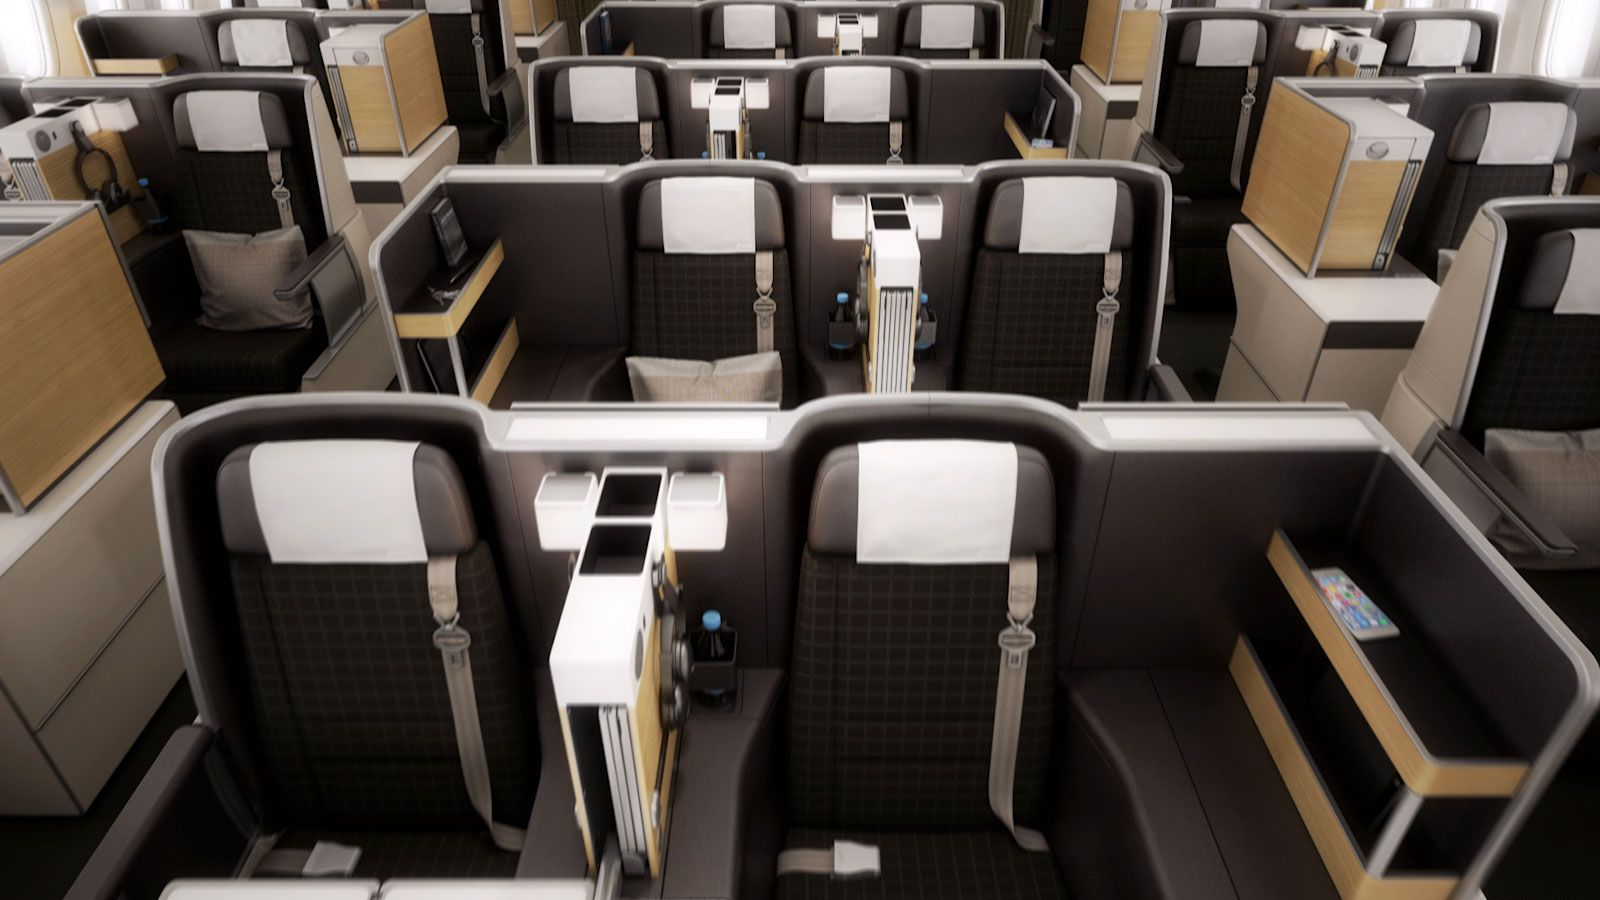 Business Class, SWISS 777300ER cabin interior